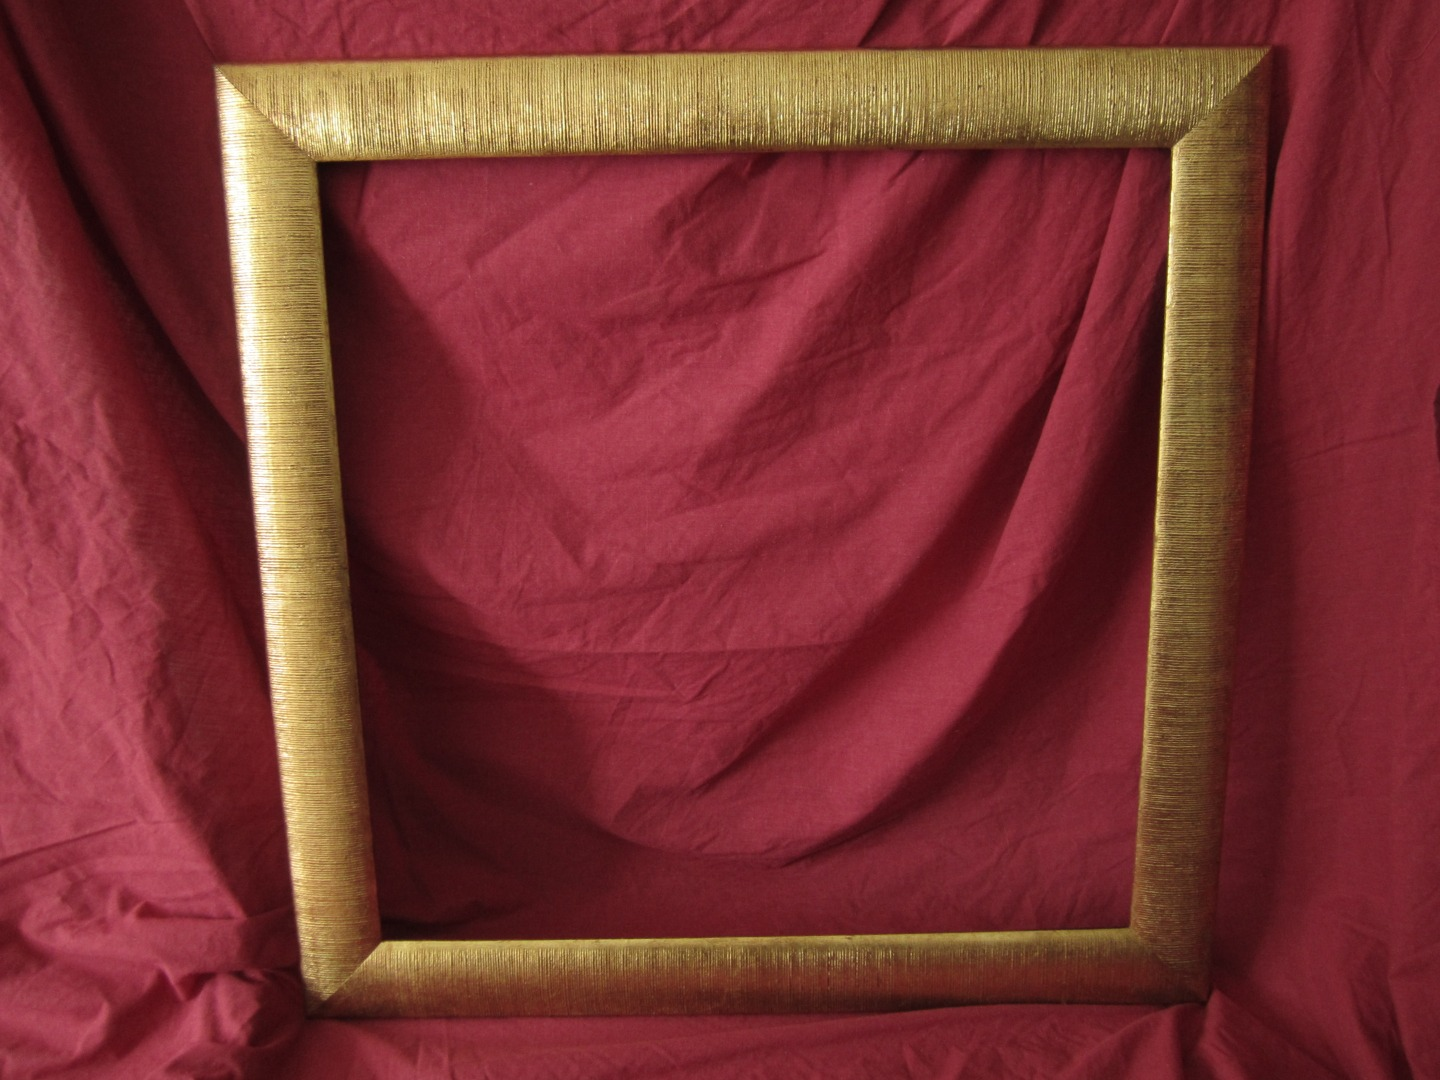 ART DECO PERIOD FRAME